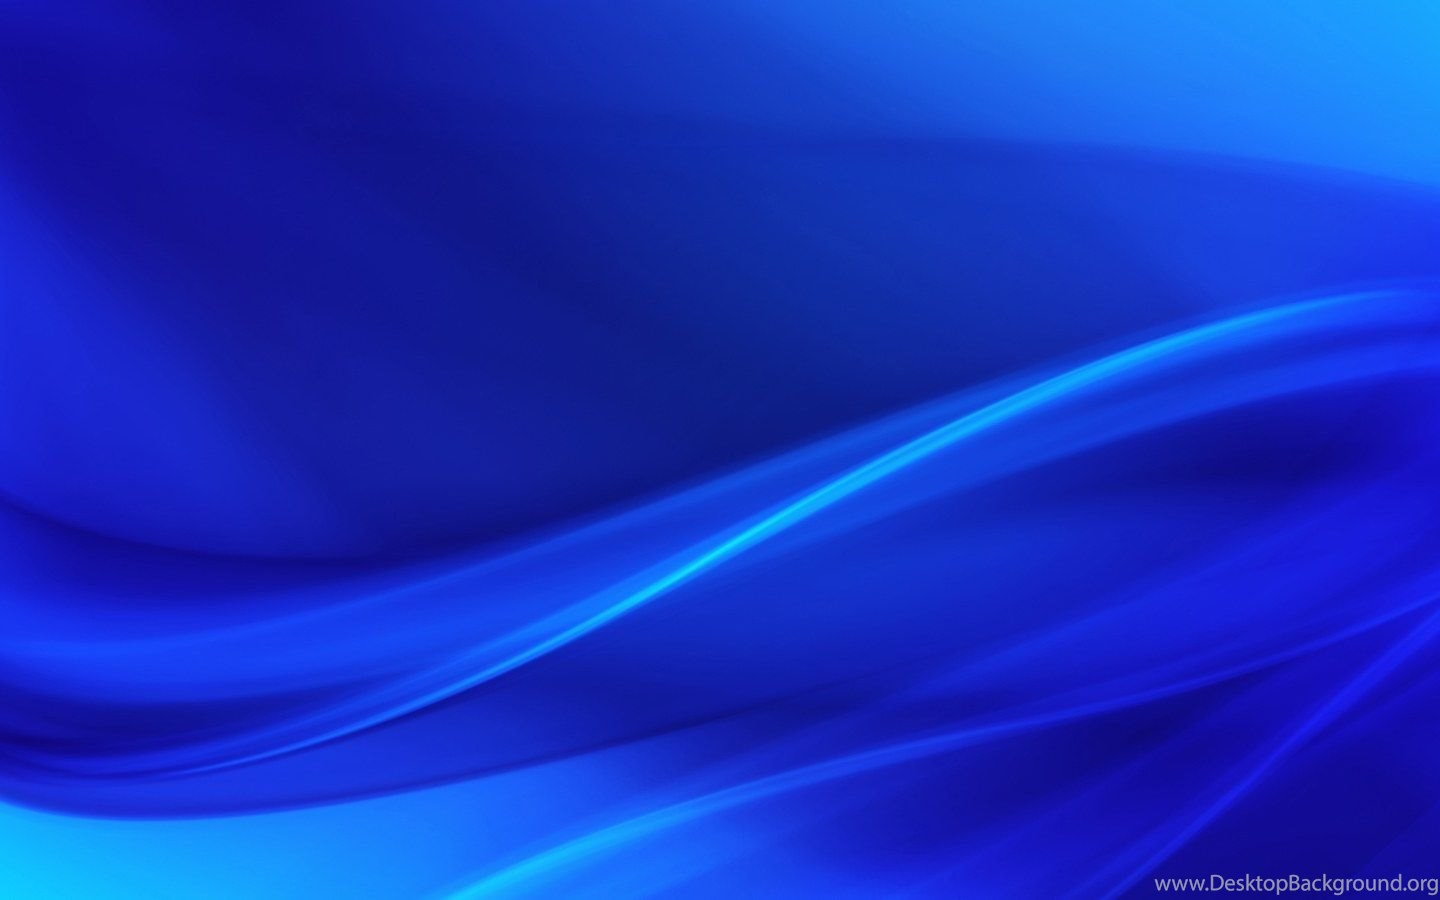 Blue Abstract HD Wallpapers Desktop Background